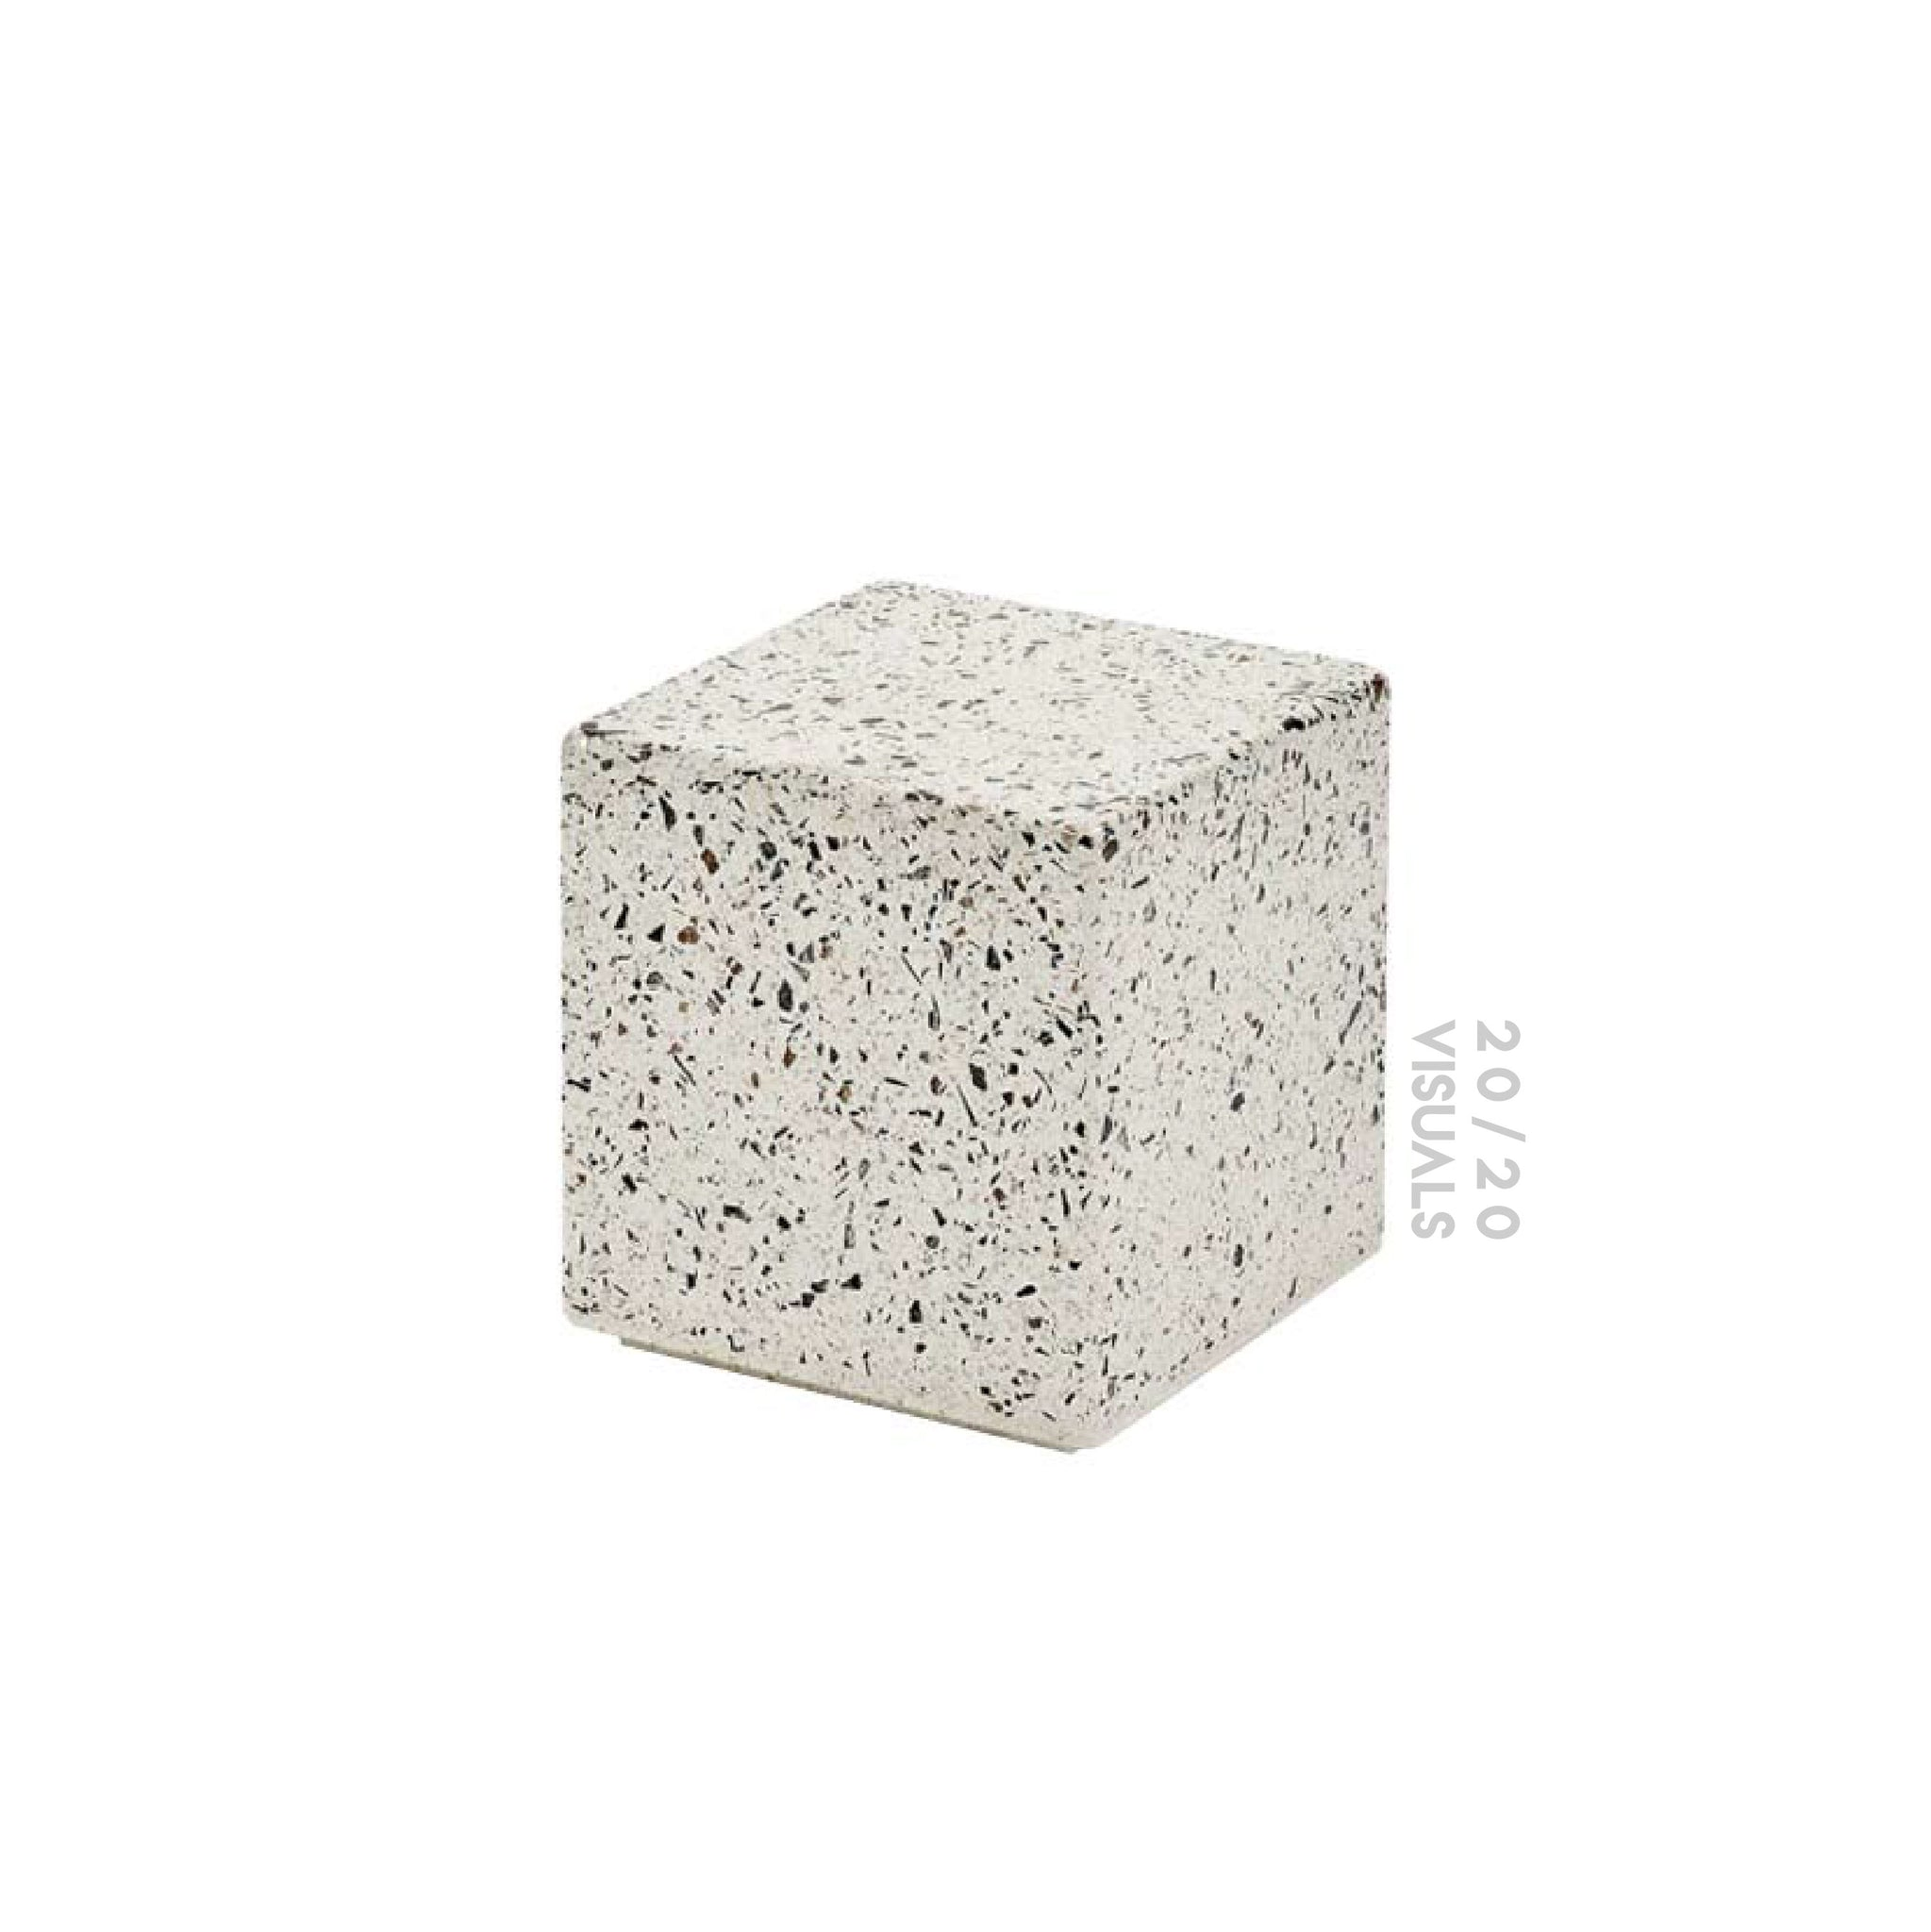 Terrazzo Block Side Table